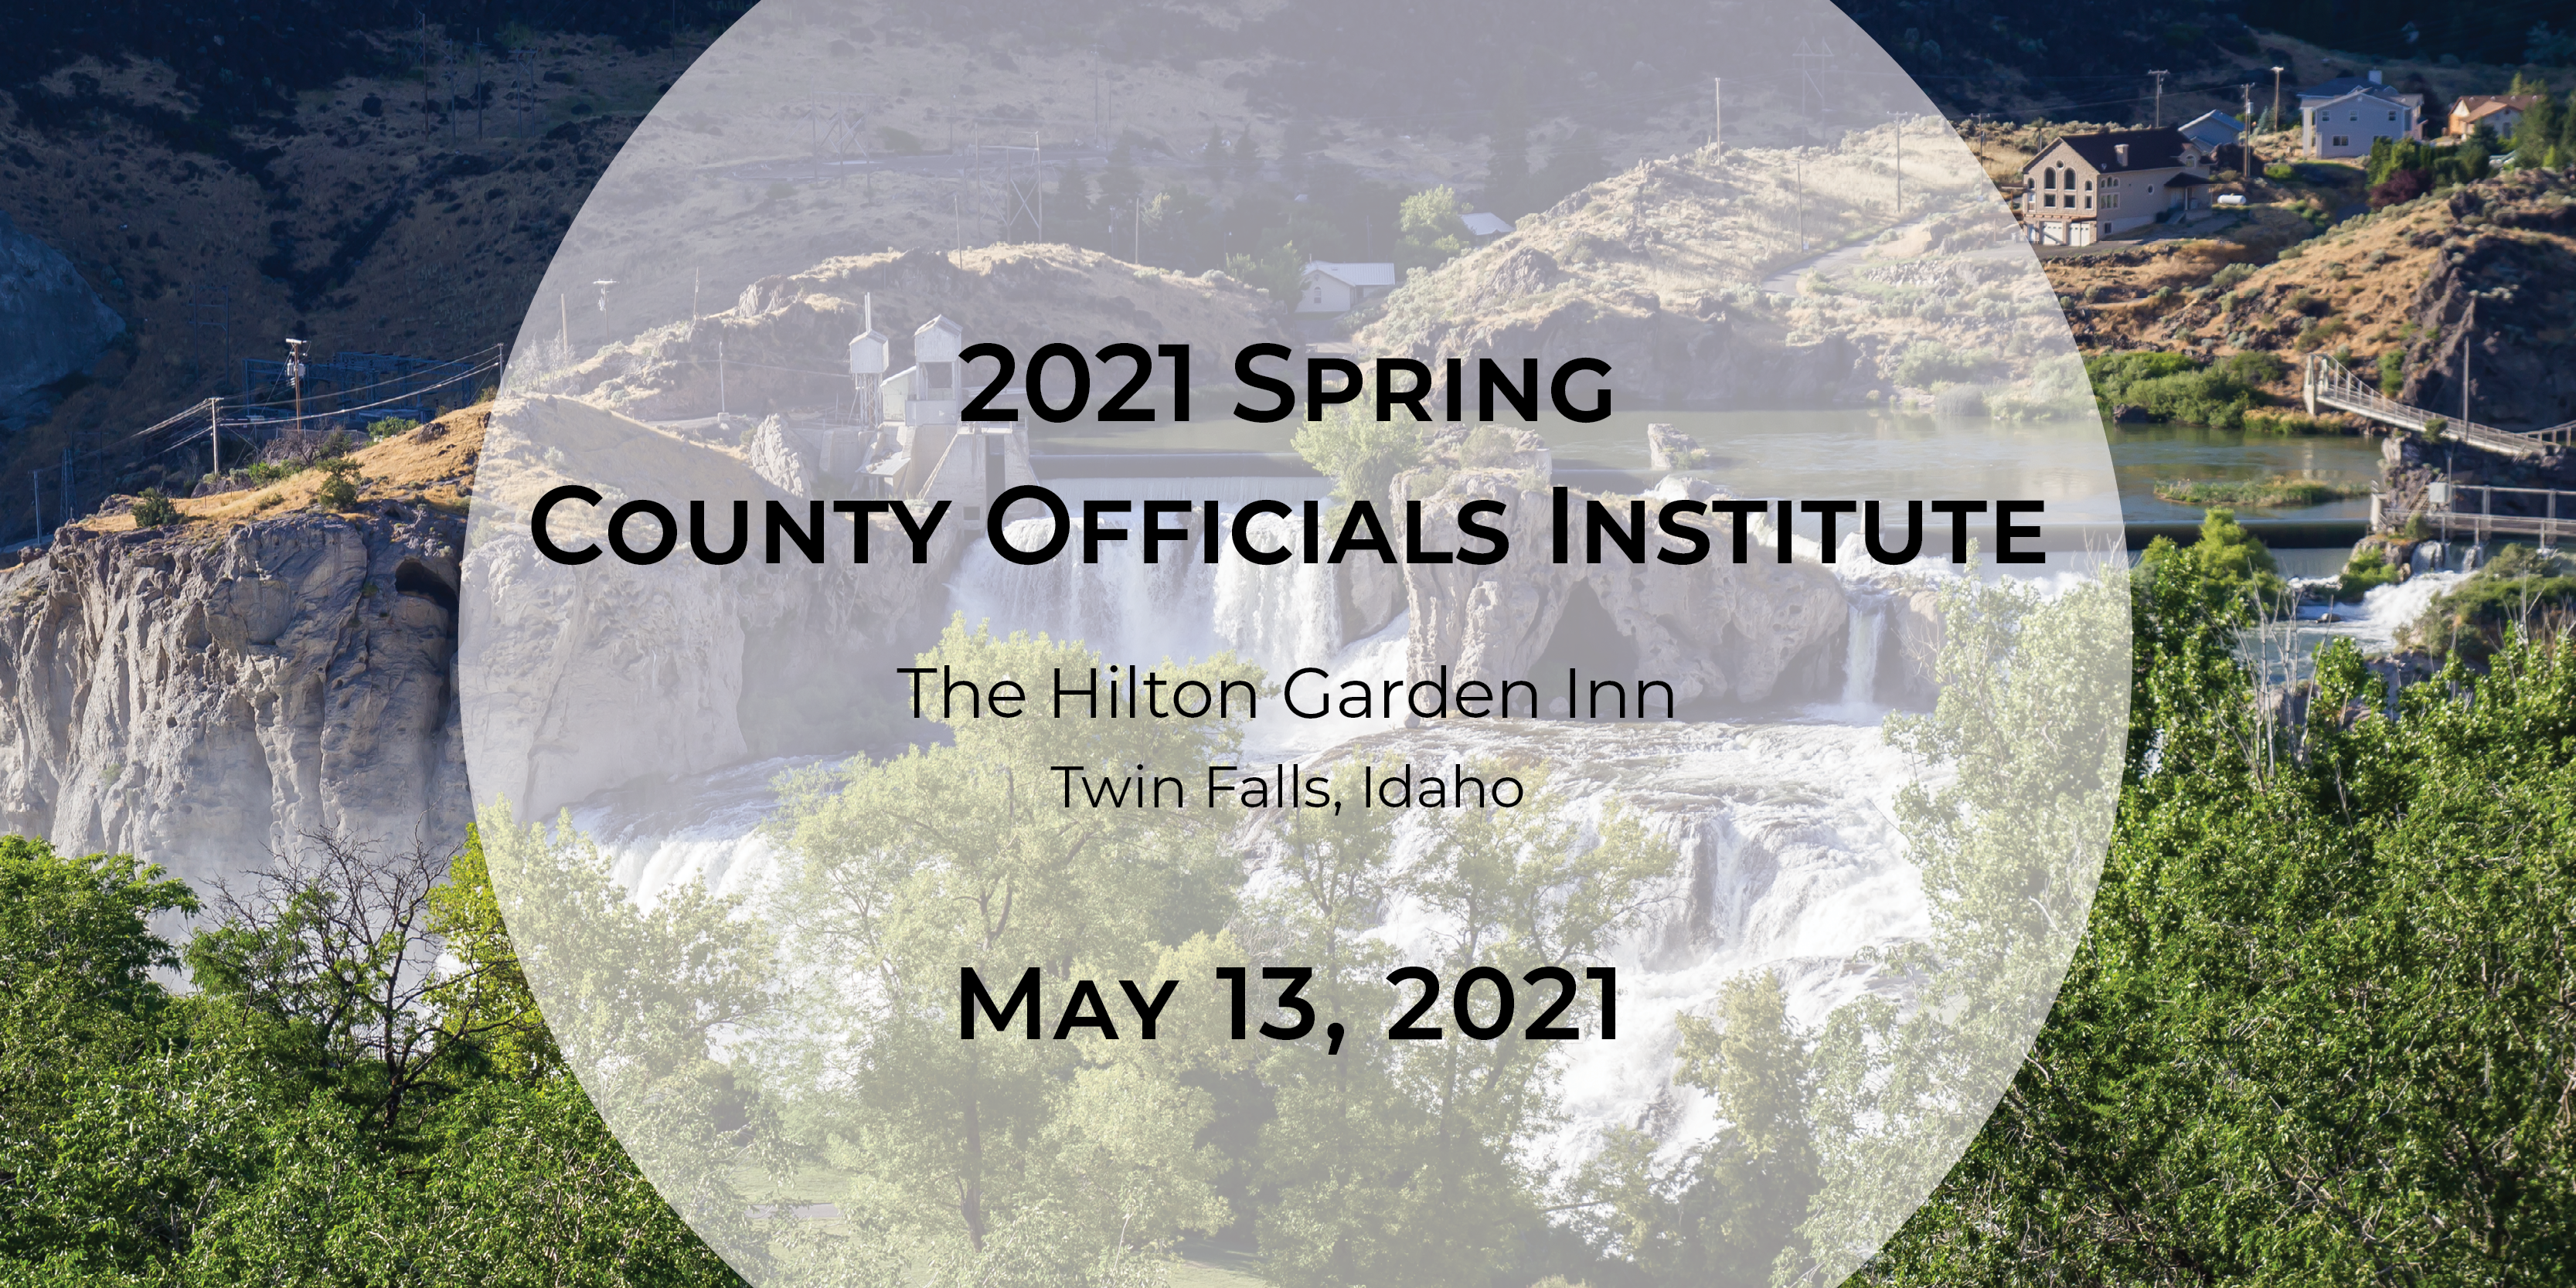 2021 Spring County Officials Institute – Twin Falls